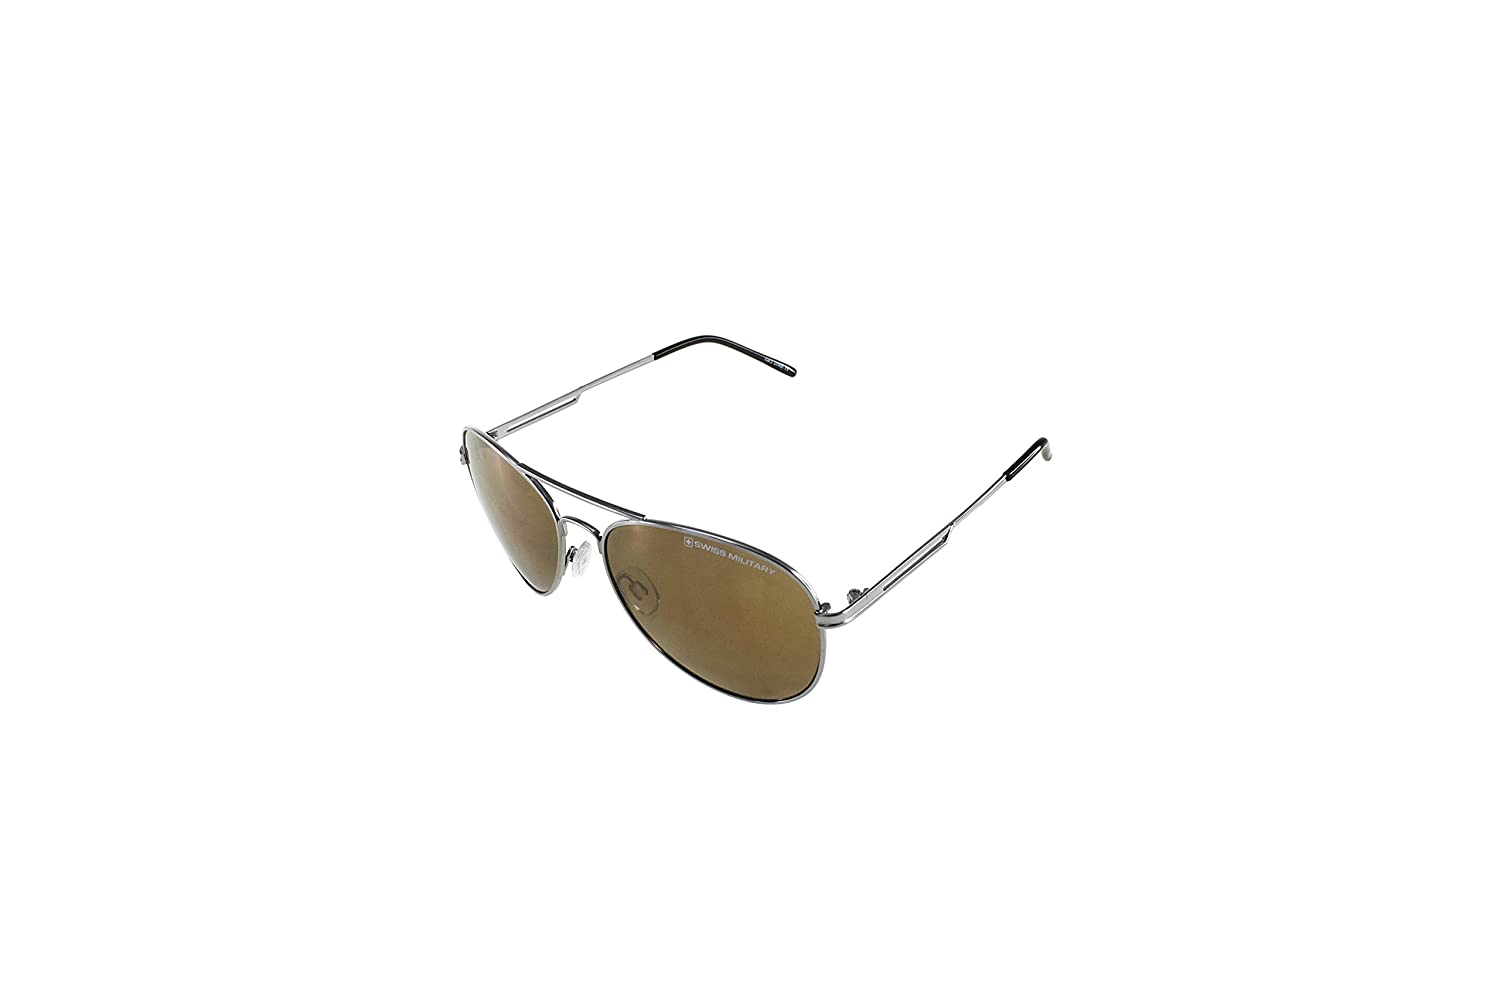 e747c22795 Swiss Military Mirrored Aviator Men s Sunglasses - (SUM56